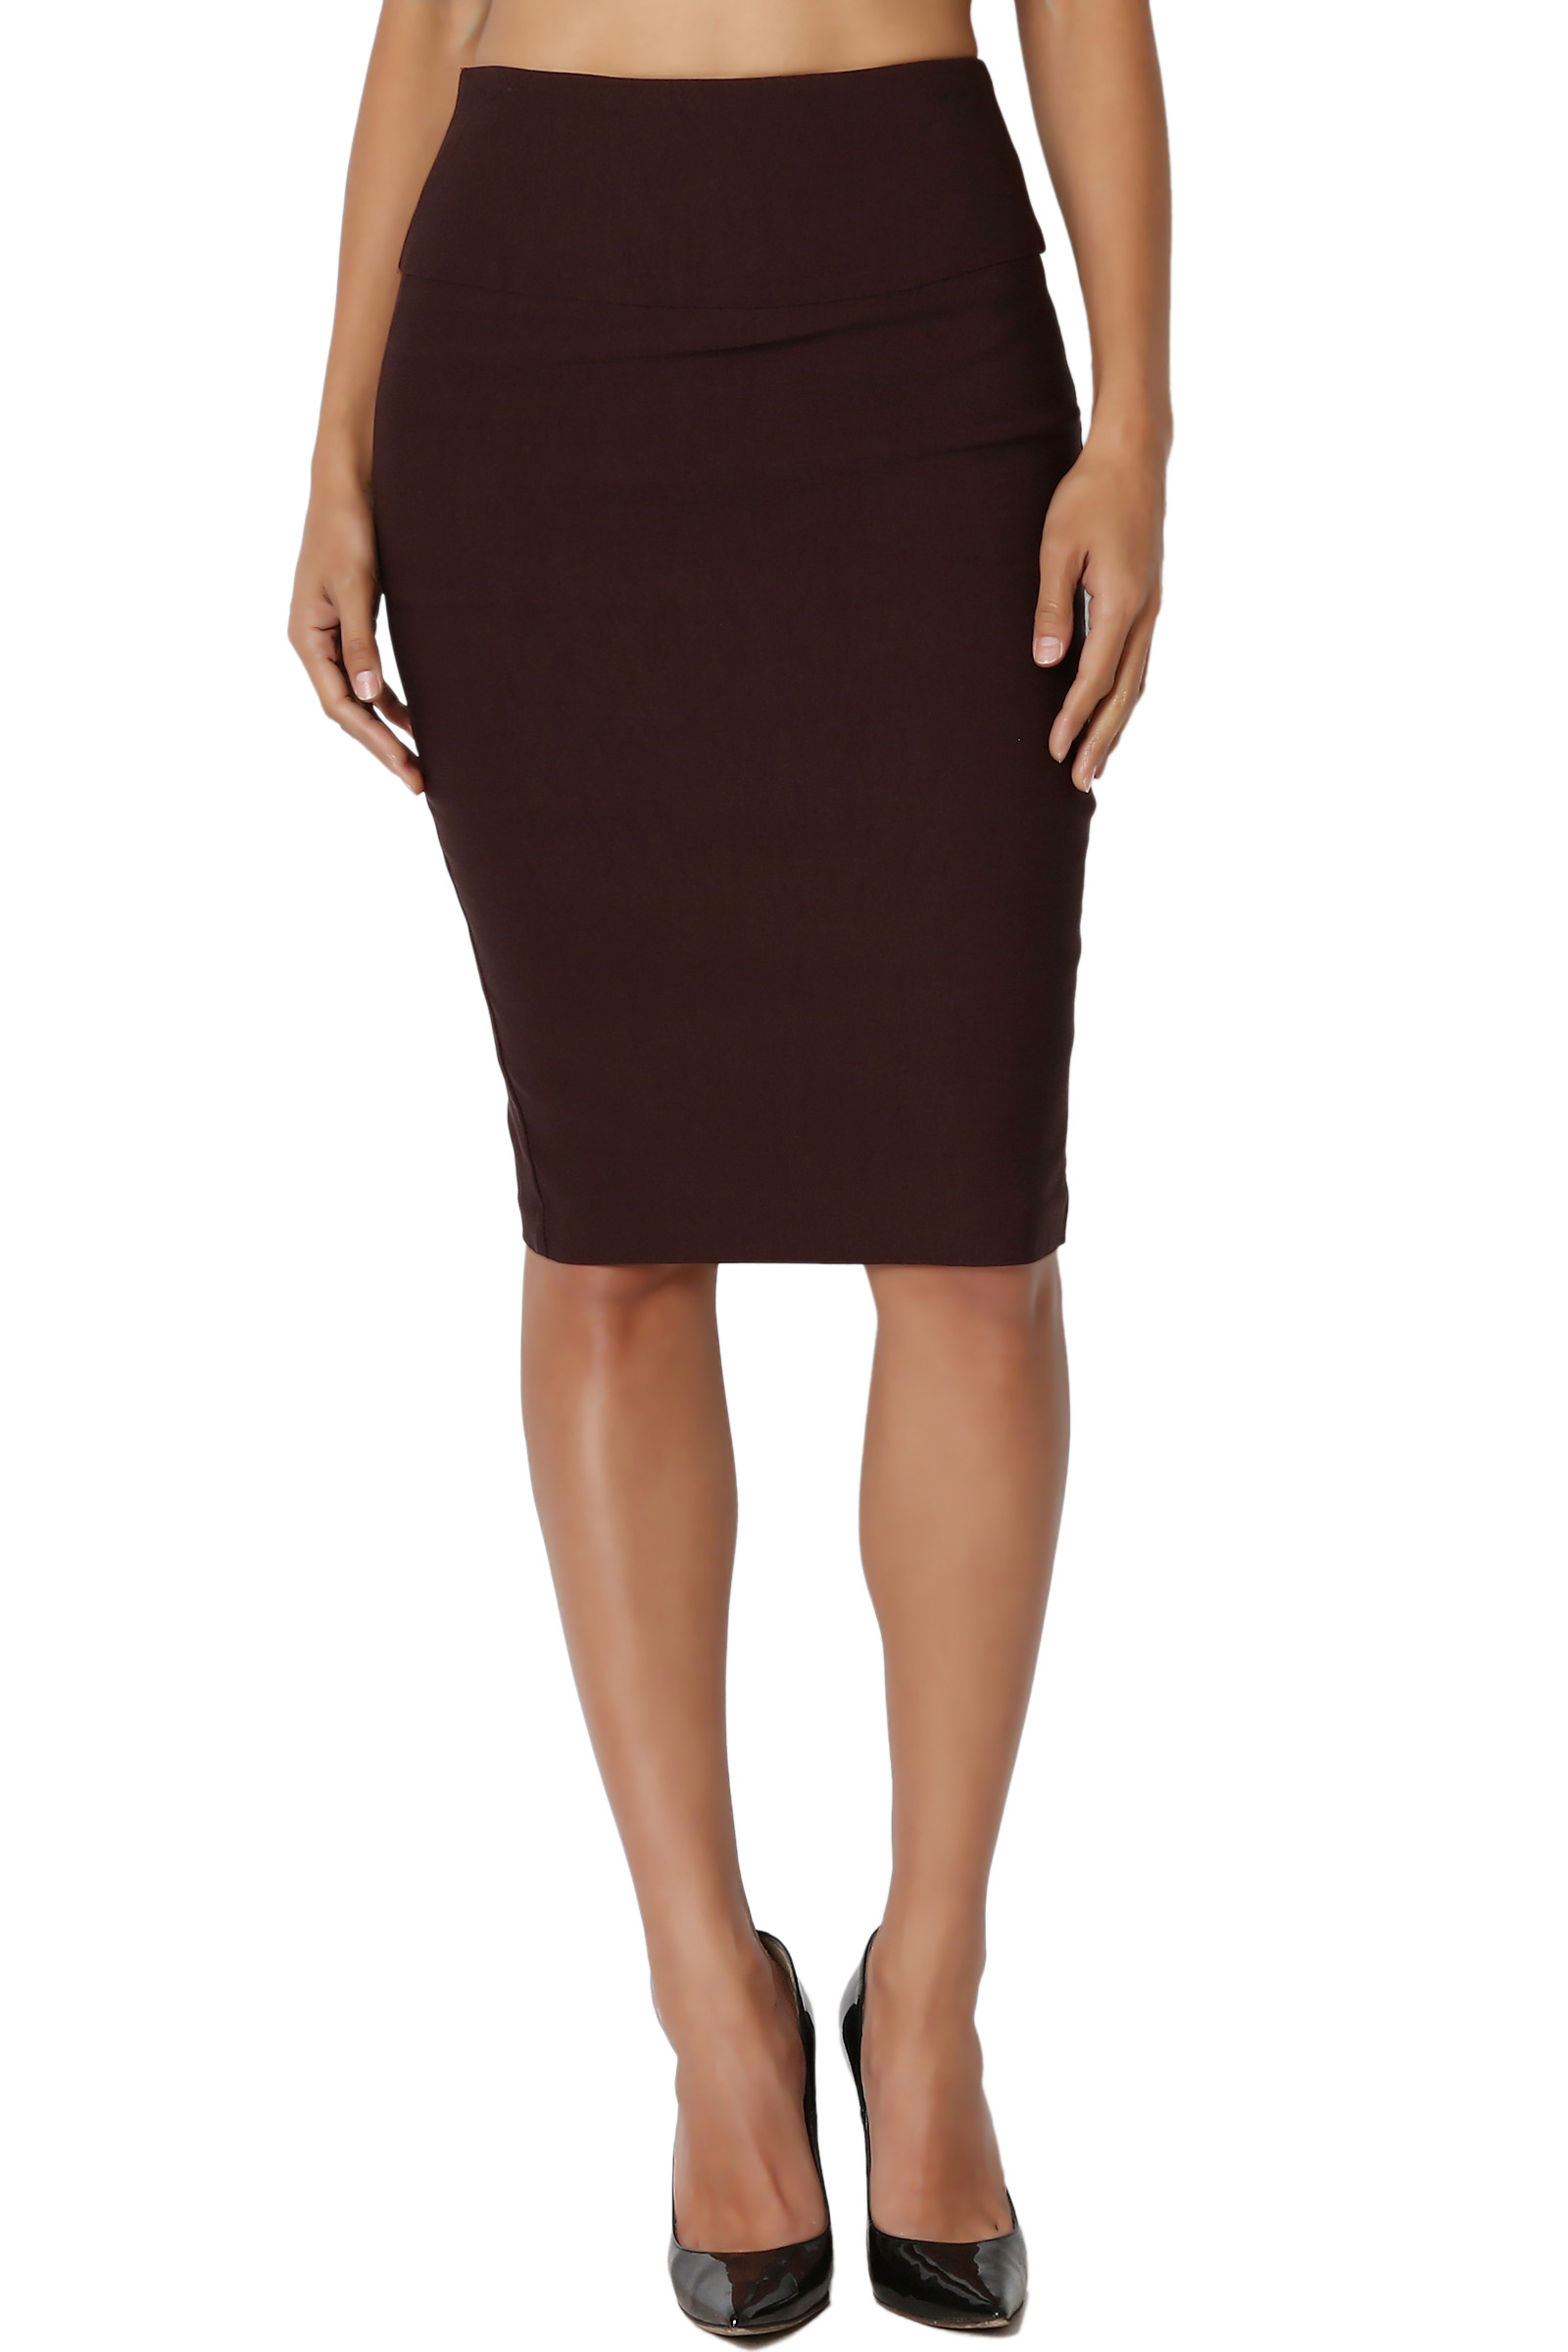 TheMogan Junior's S~3X High Waist Stretch Woven Casual to Formal Pencil Midi Skirt